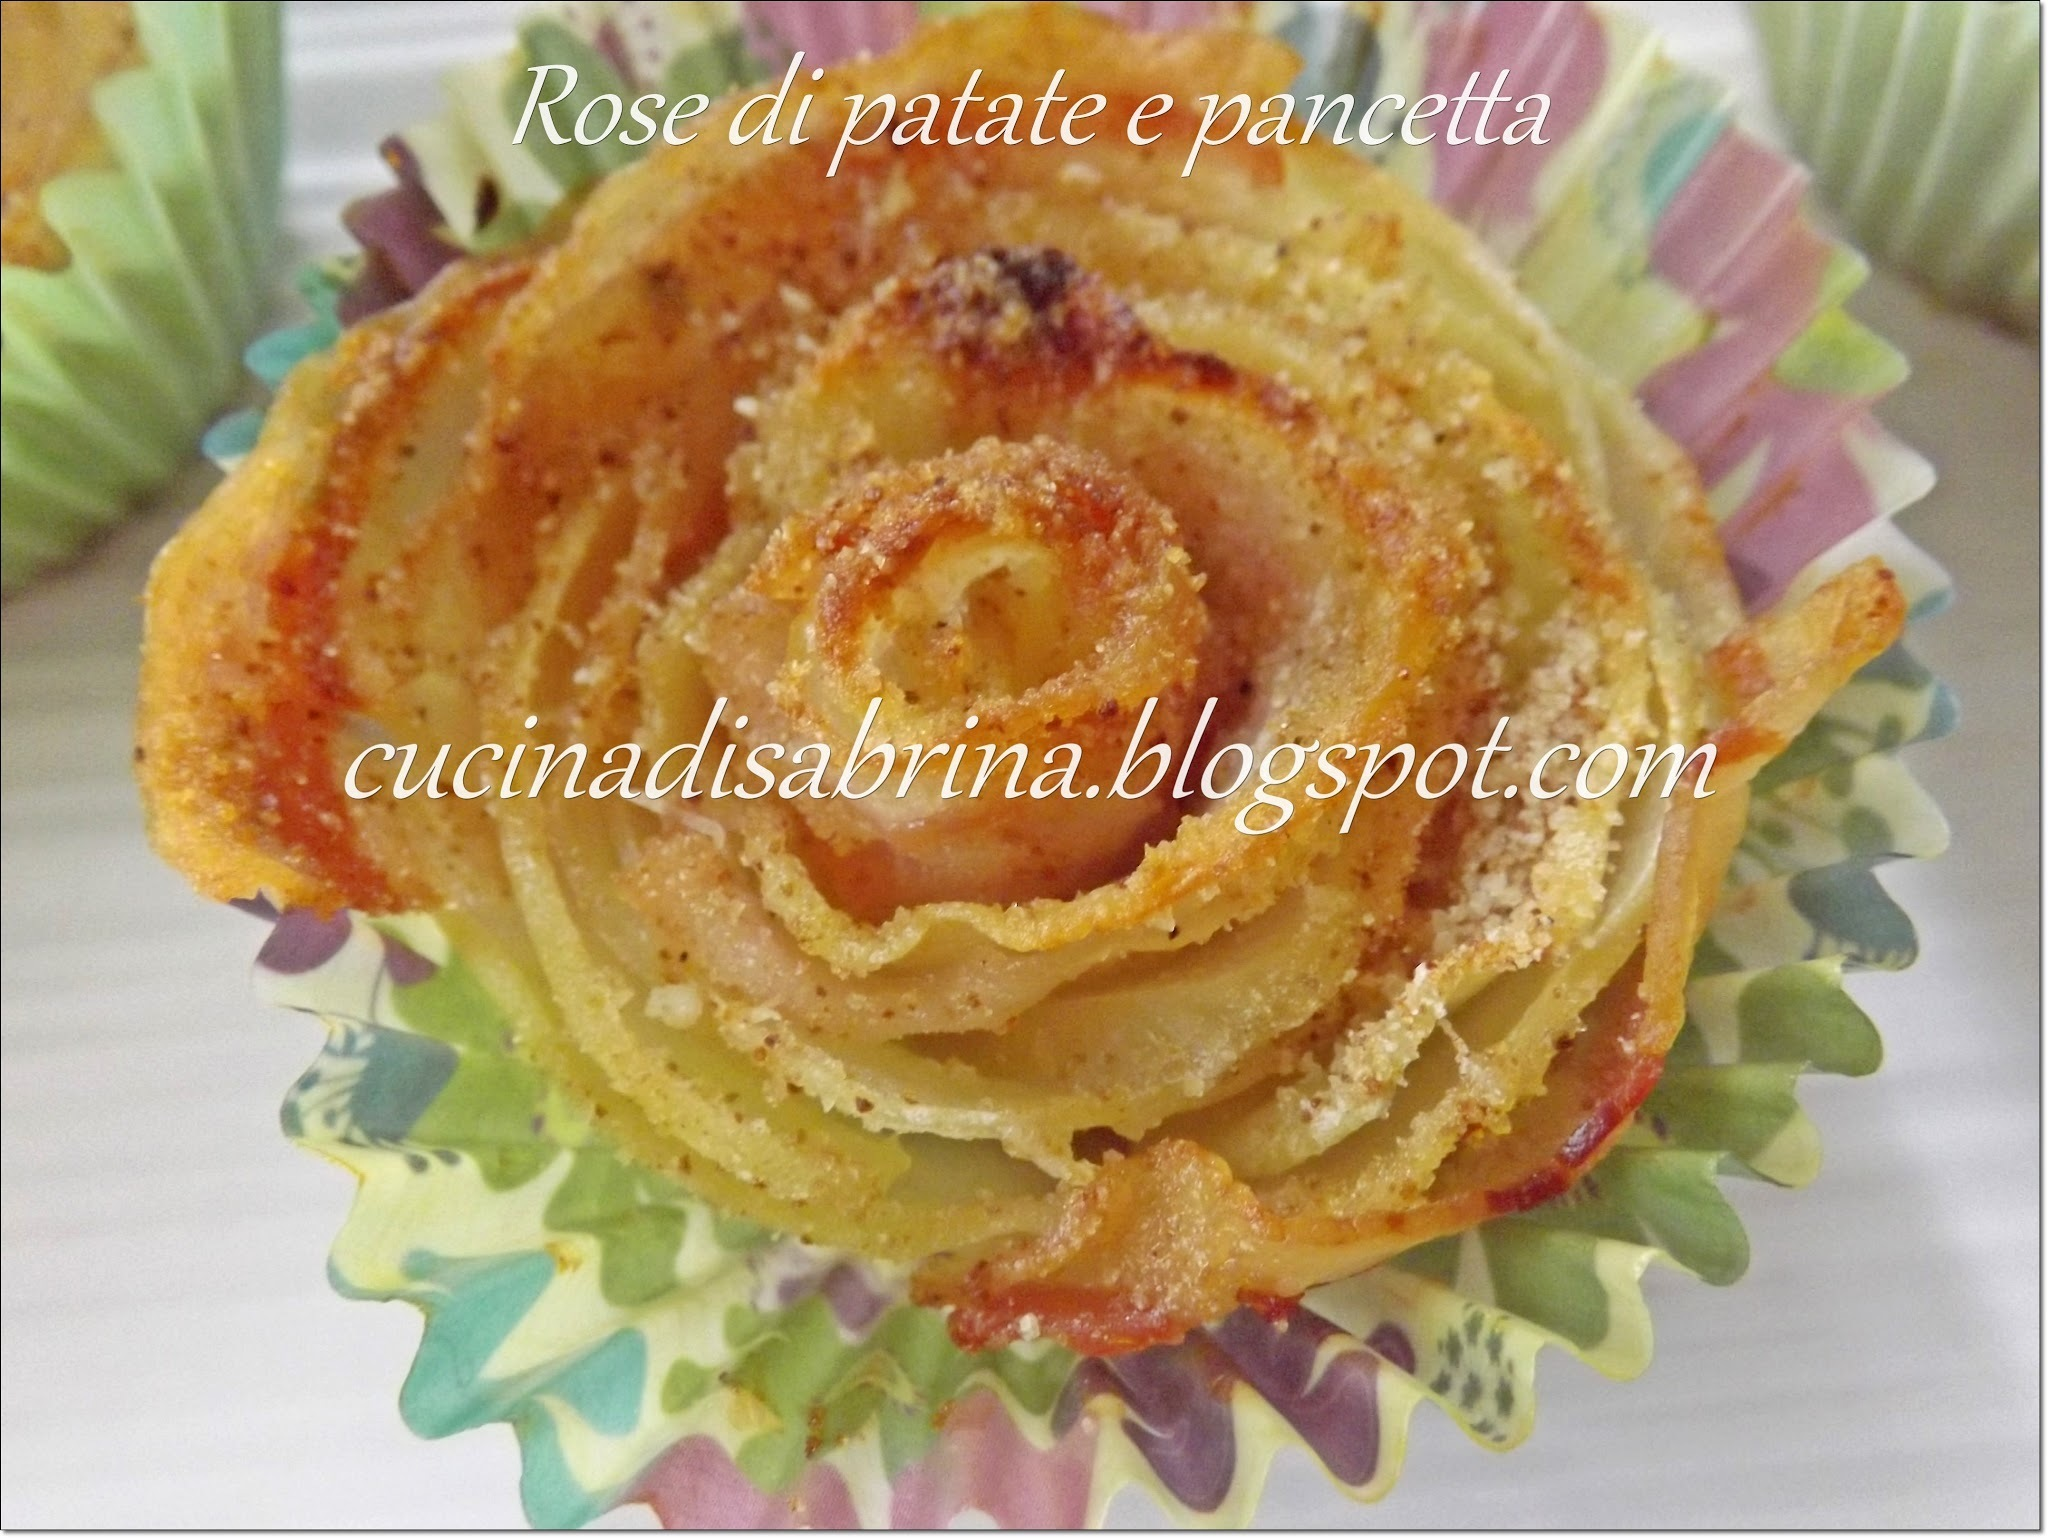 Rose di patate e pancetta